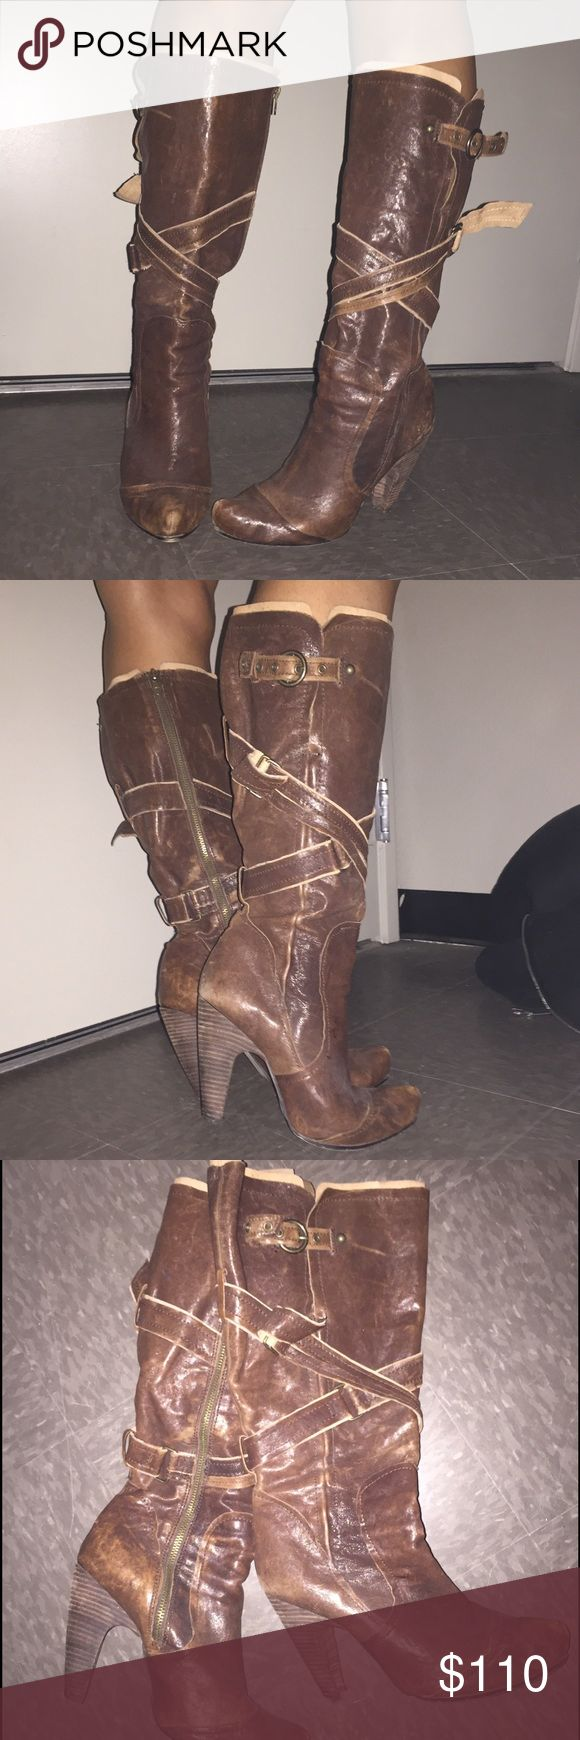 """Brown leather Seychelles boots Real leather knee high Seychelles brown boots. Worn a couple of times. Easy zipper up the side. Very comfortable. Rugged """"worn"""" look. seychelles Shoes Heeled Boots"""